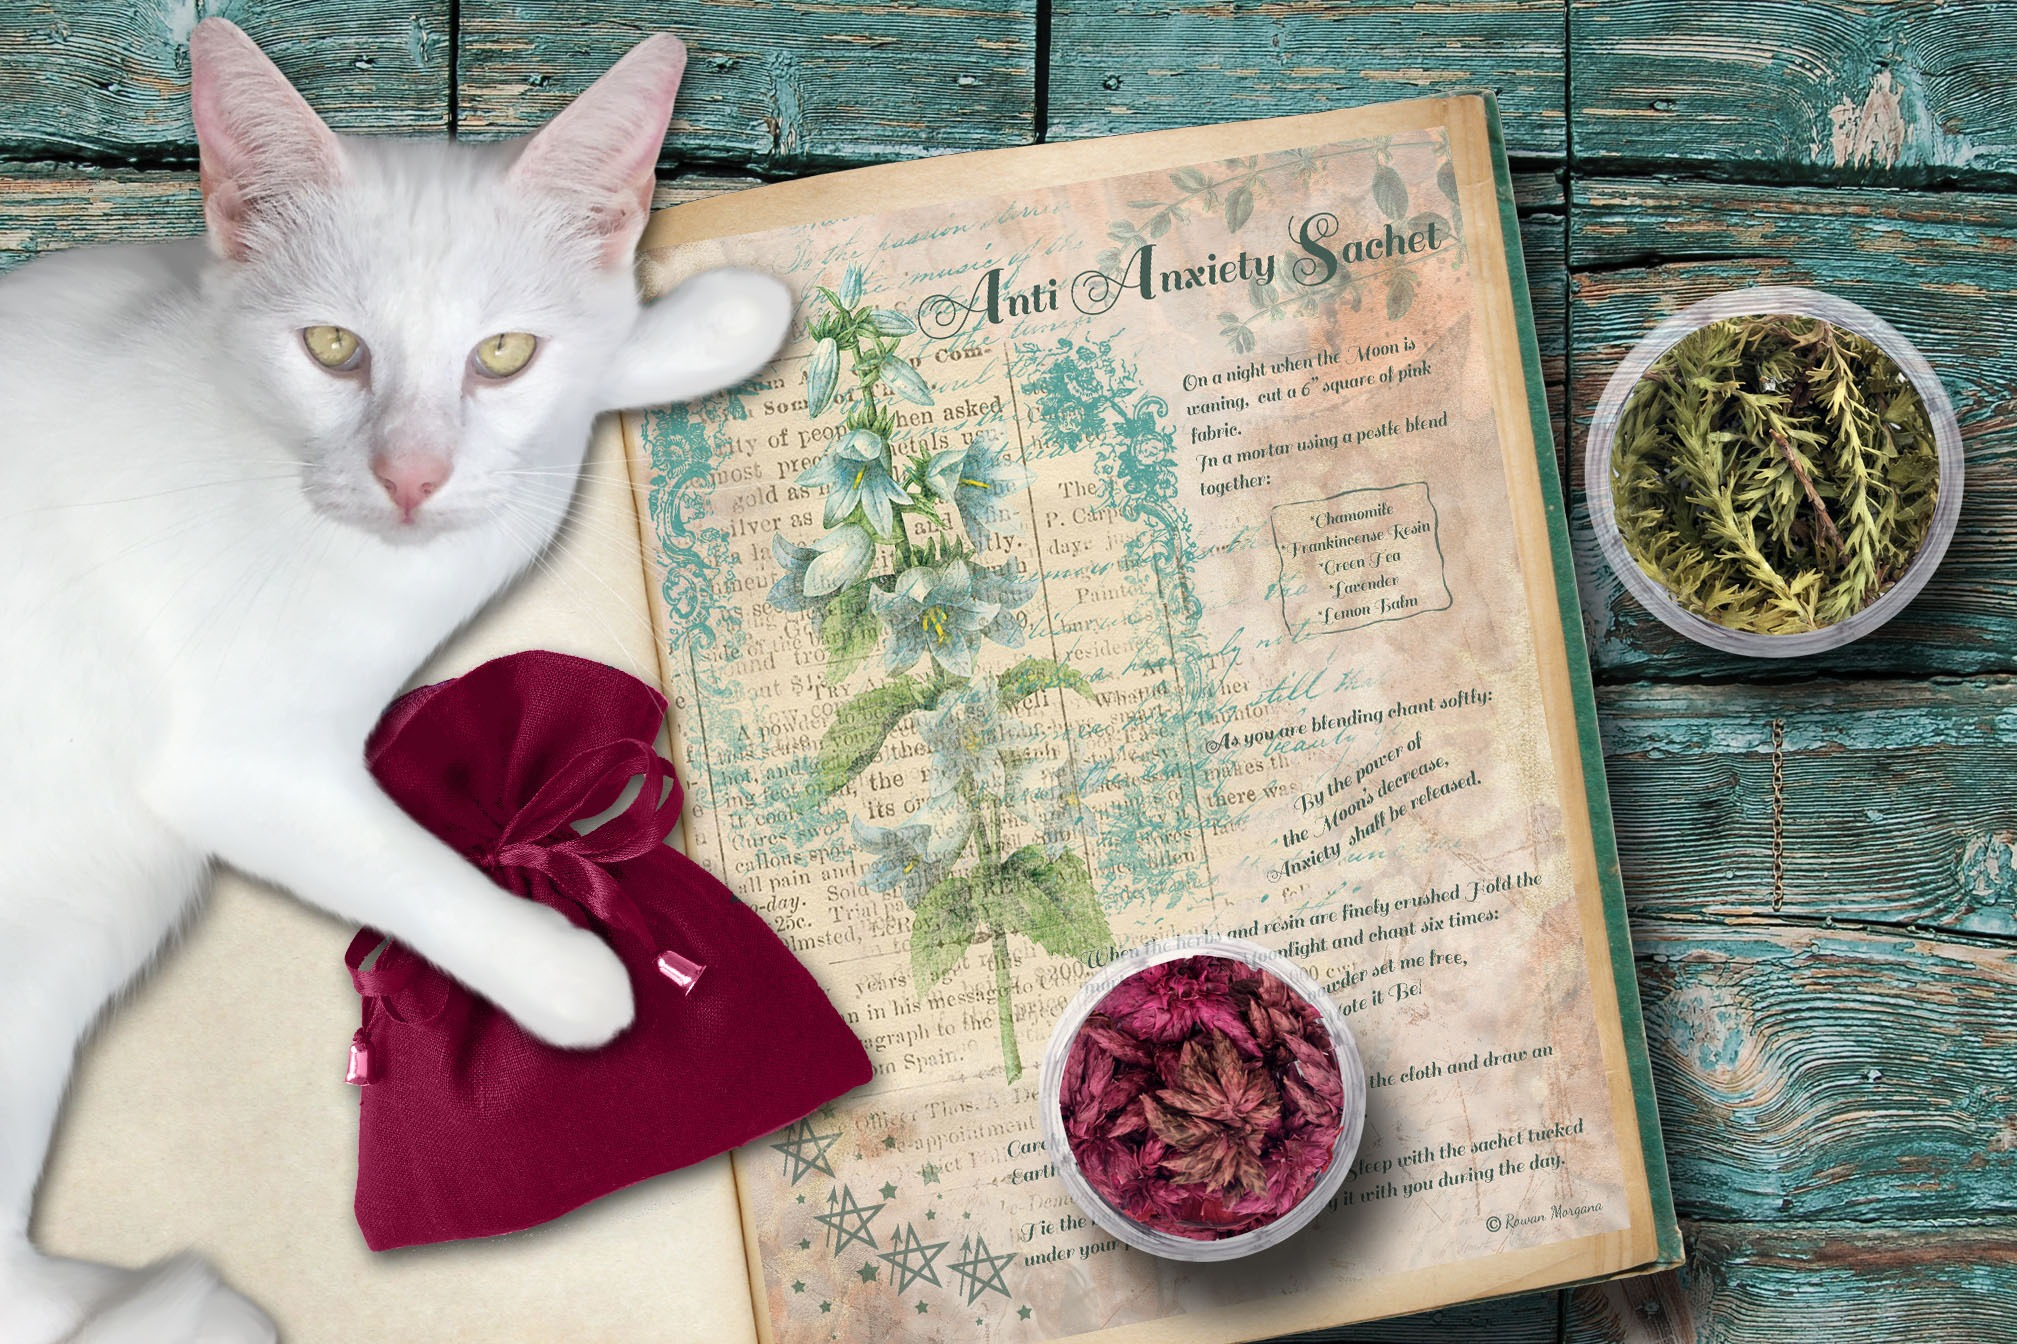 ANTI ANXIETY SACHET  Recipe and Spell